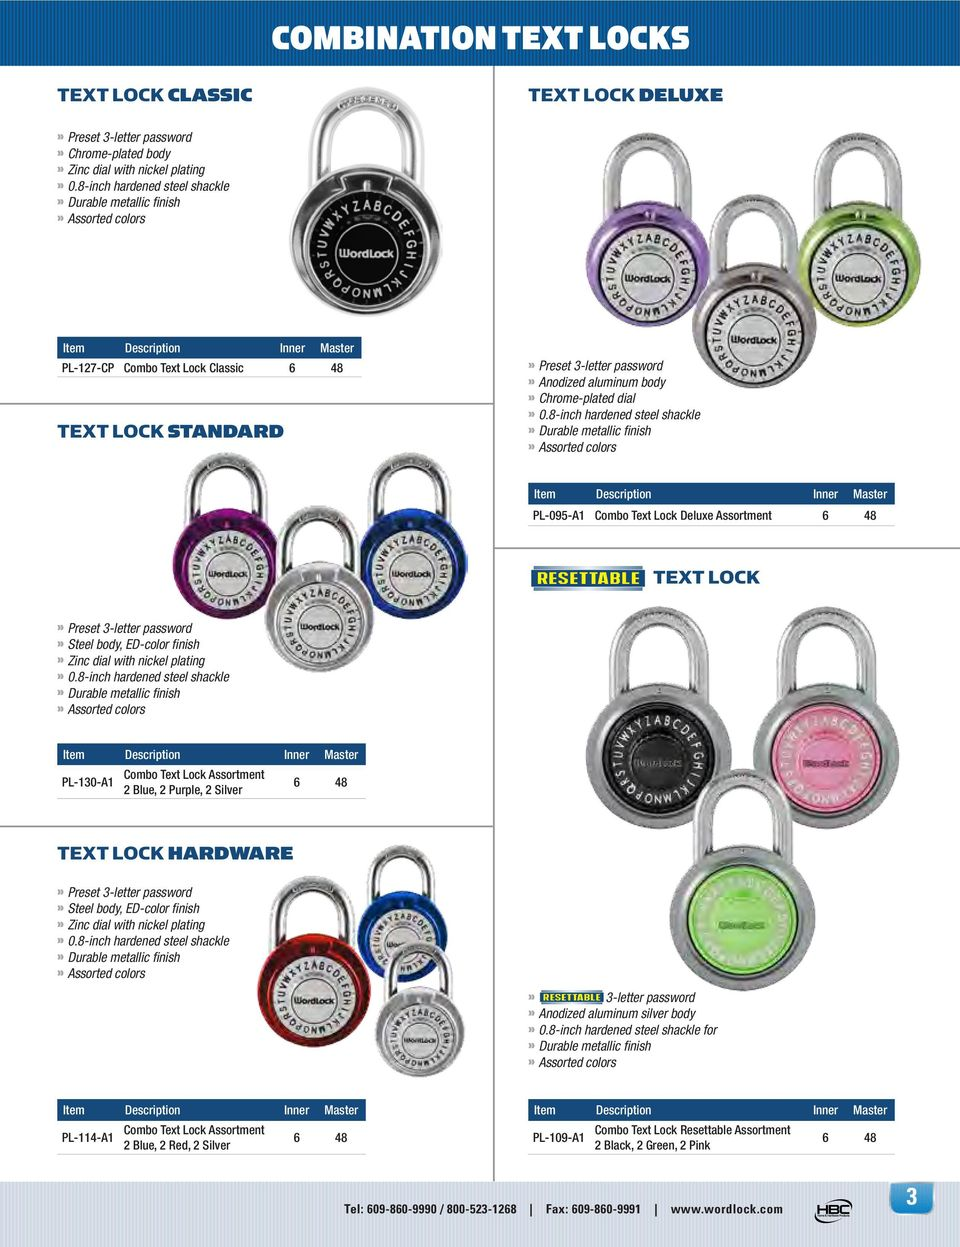 8-inch hardened steel shackle Durable metallic finish Assorted colors PL-095-A1 Combo Text Lock Deluxe Assortment RESETTABLE TEXT LOCK Preset 3-letter password Steel body, ED-color finish Zinc dial